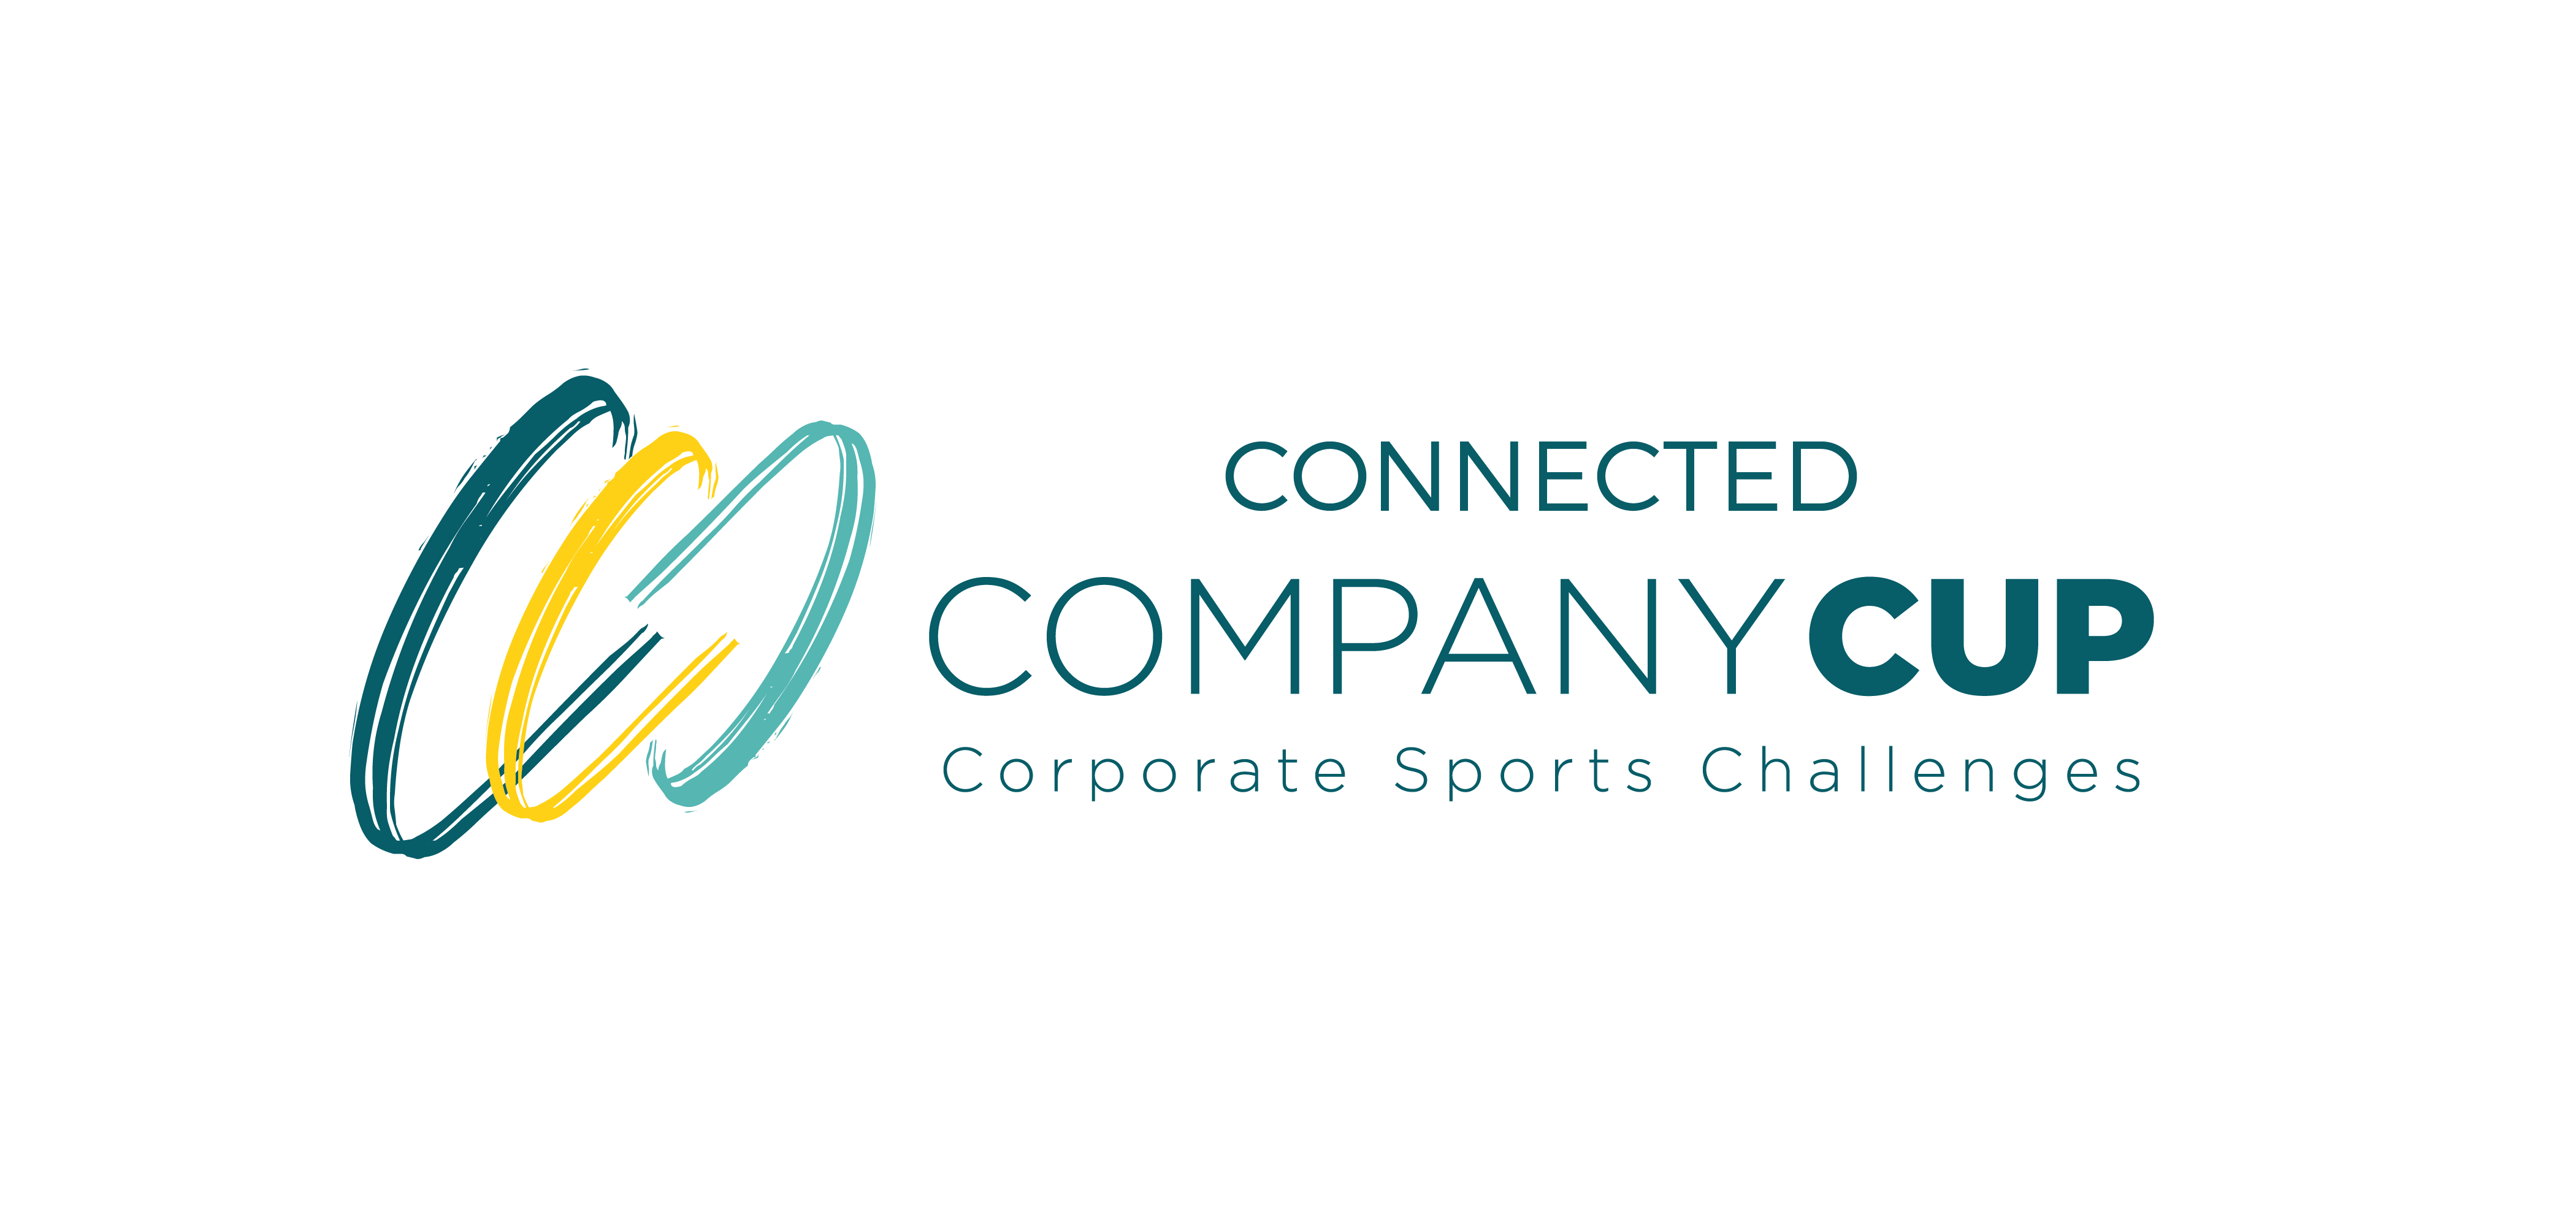 Connected Company Cup